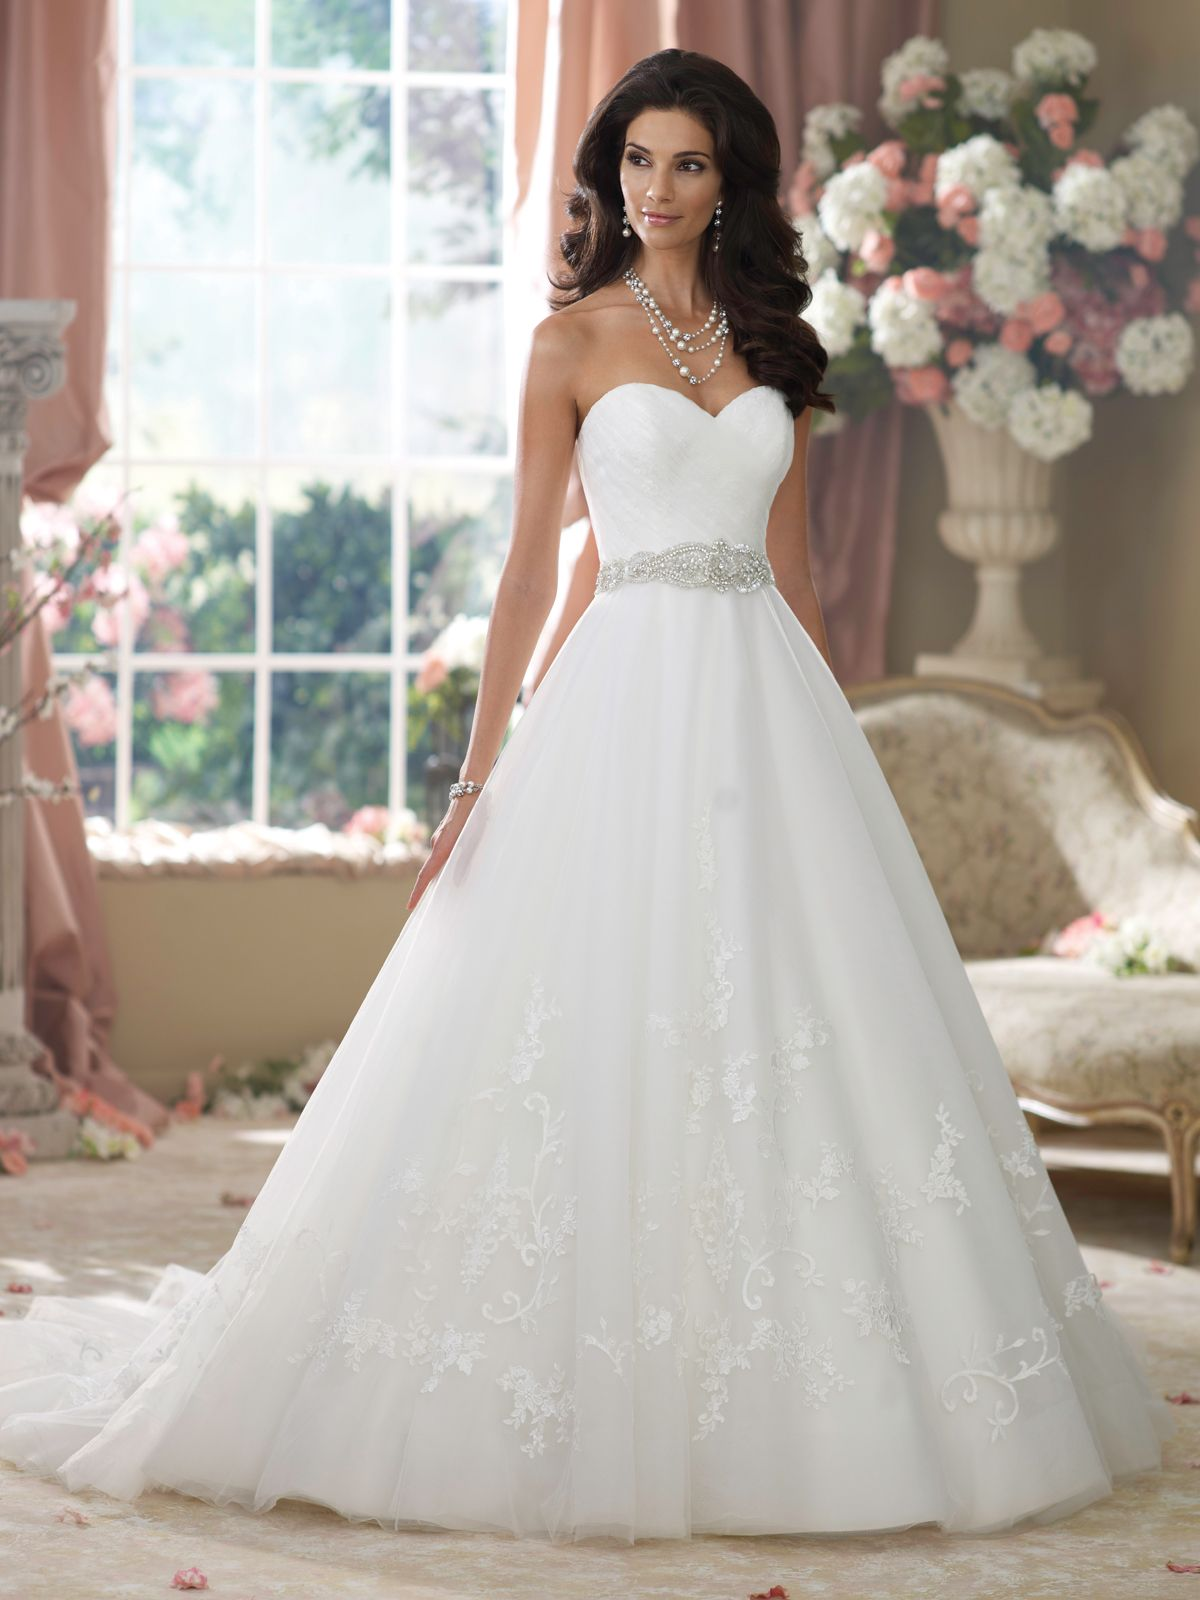 Lace ball gown wedding dresses  Wedding Dresses  Collection u Strapless embroidered lace